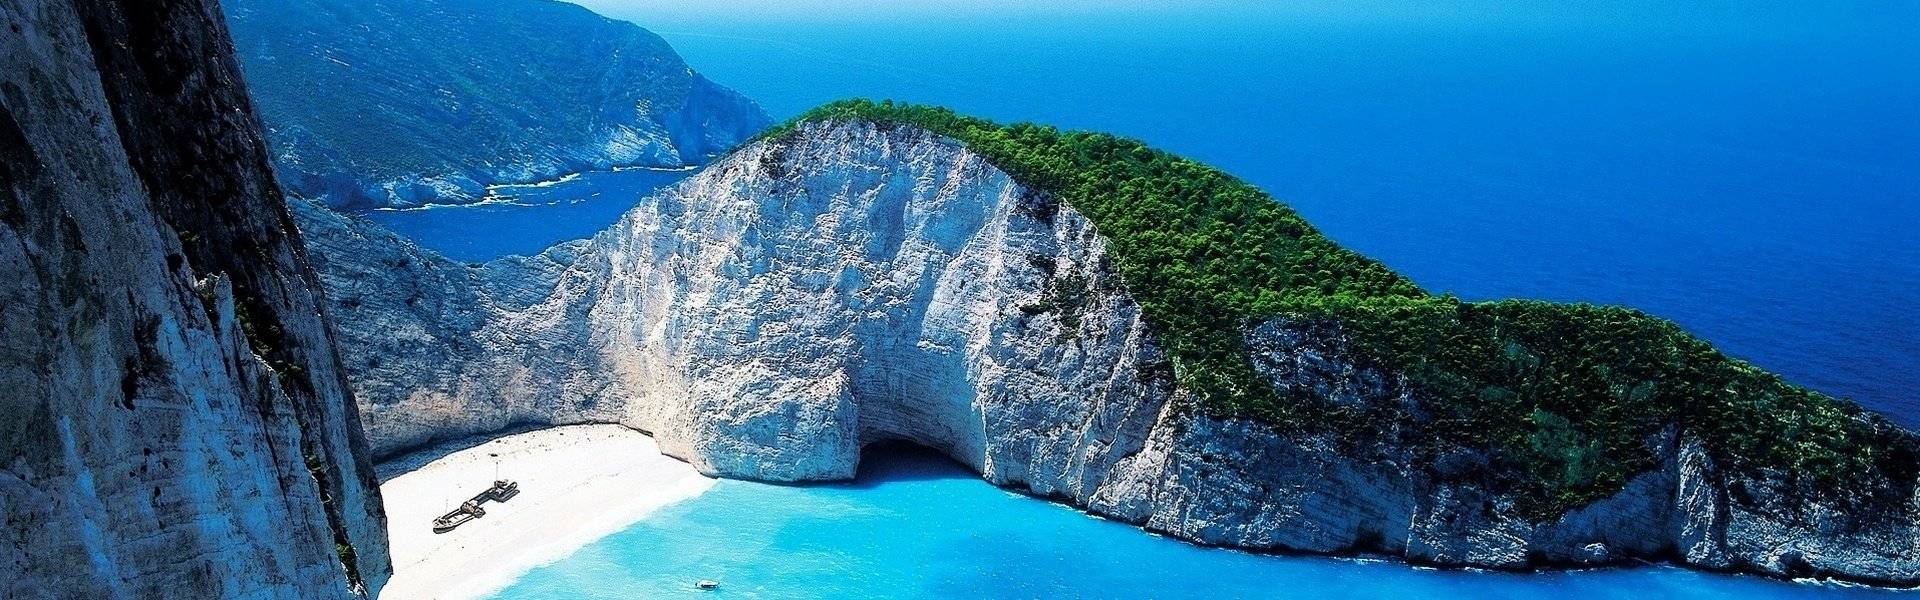 The Navagio in Zakynthos, Greece